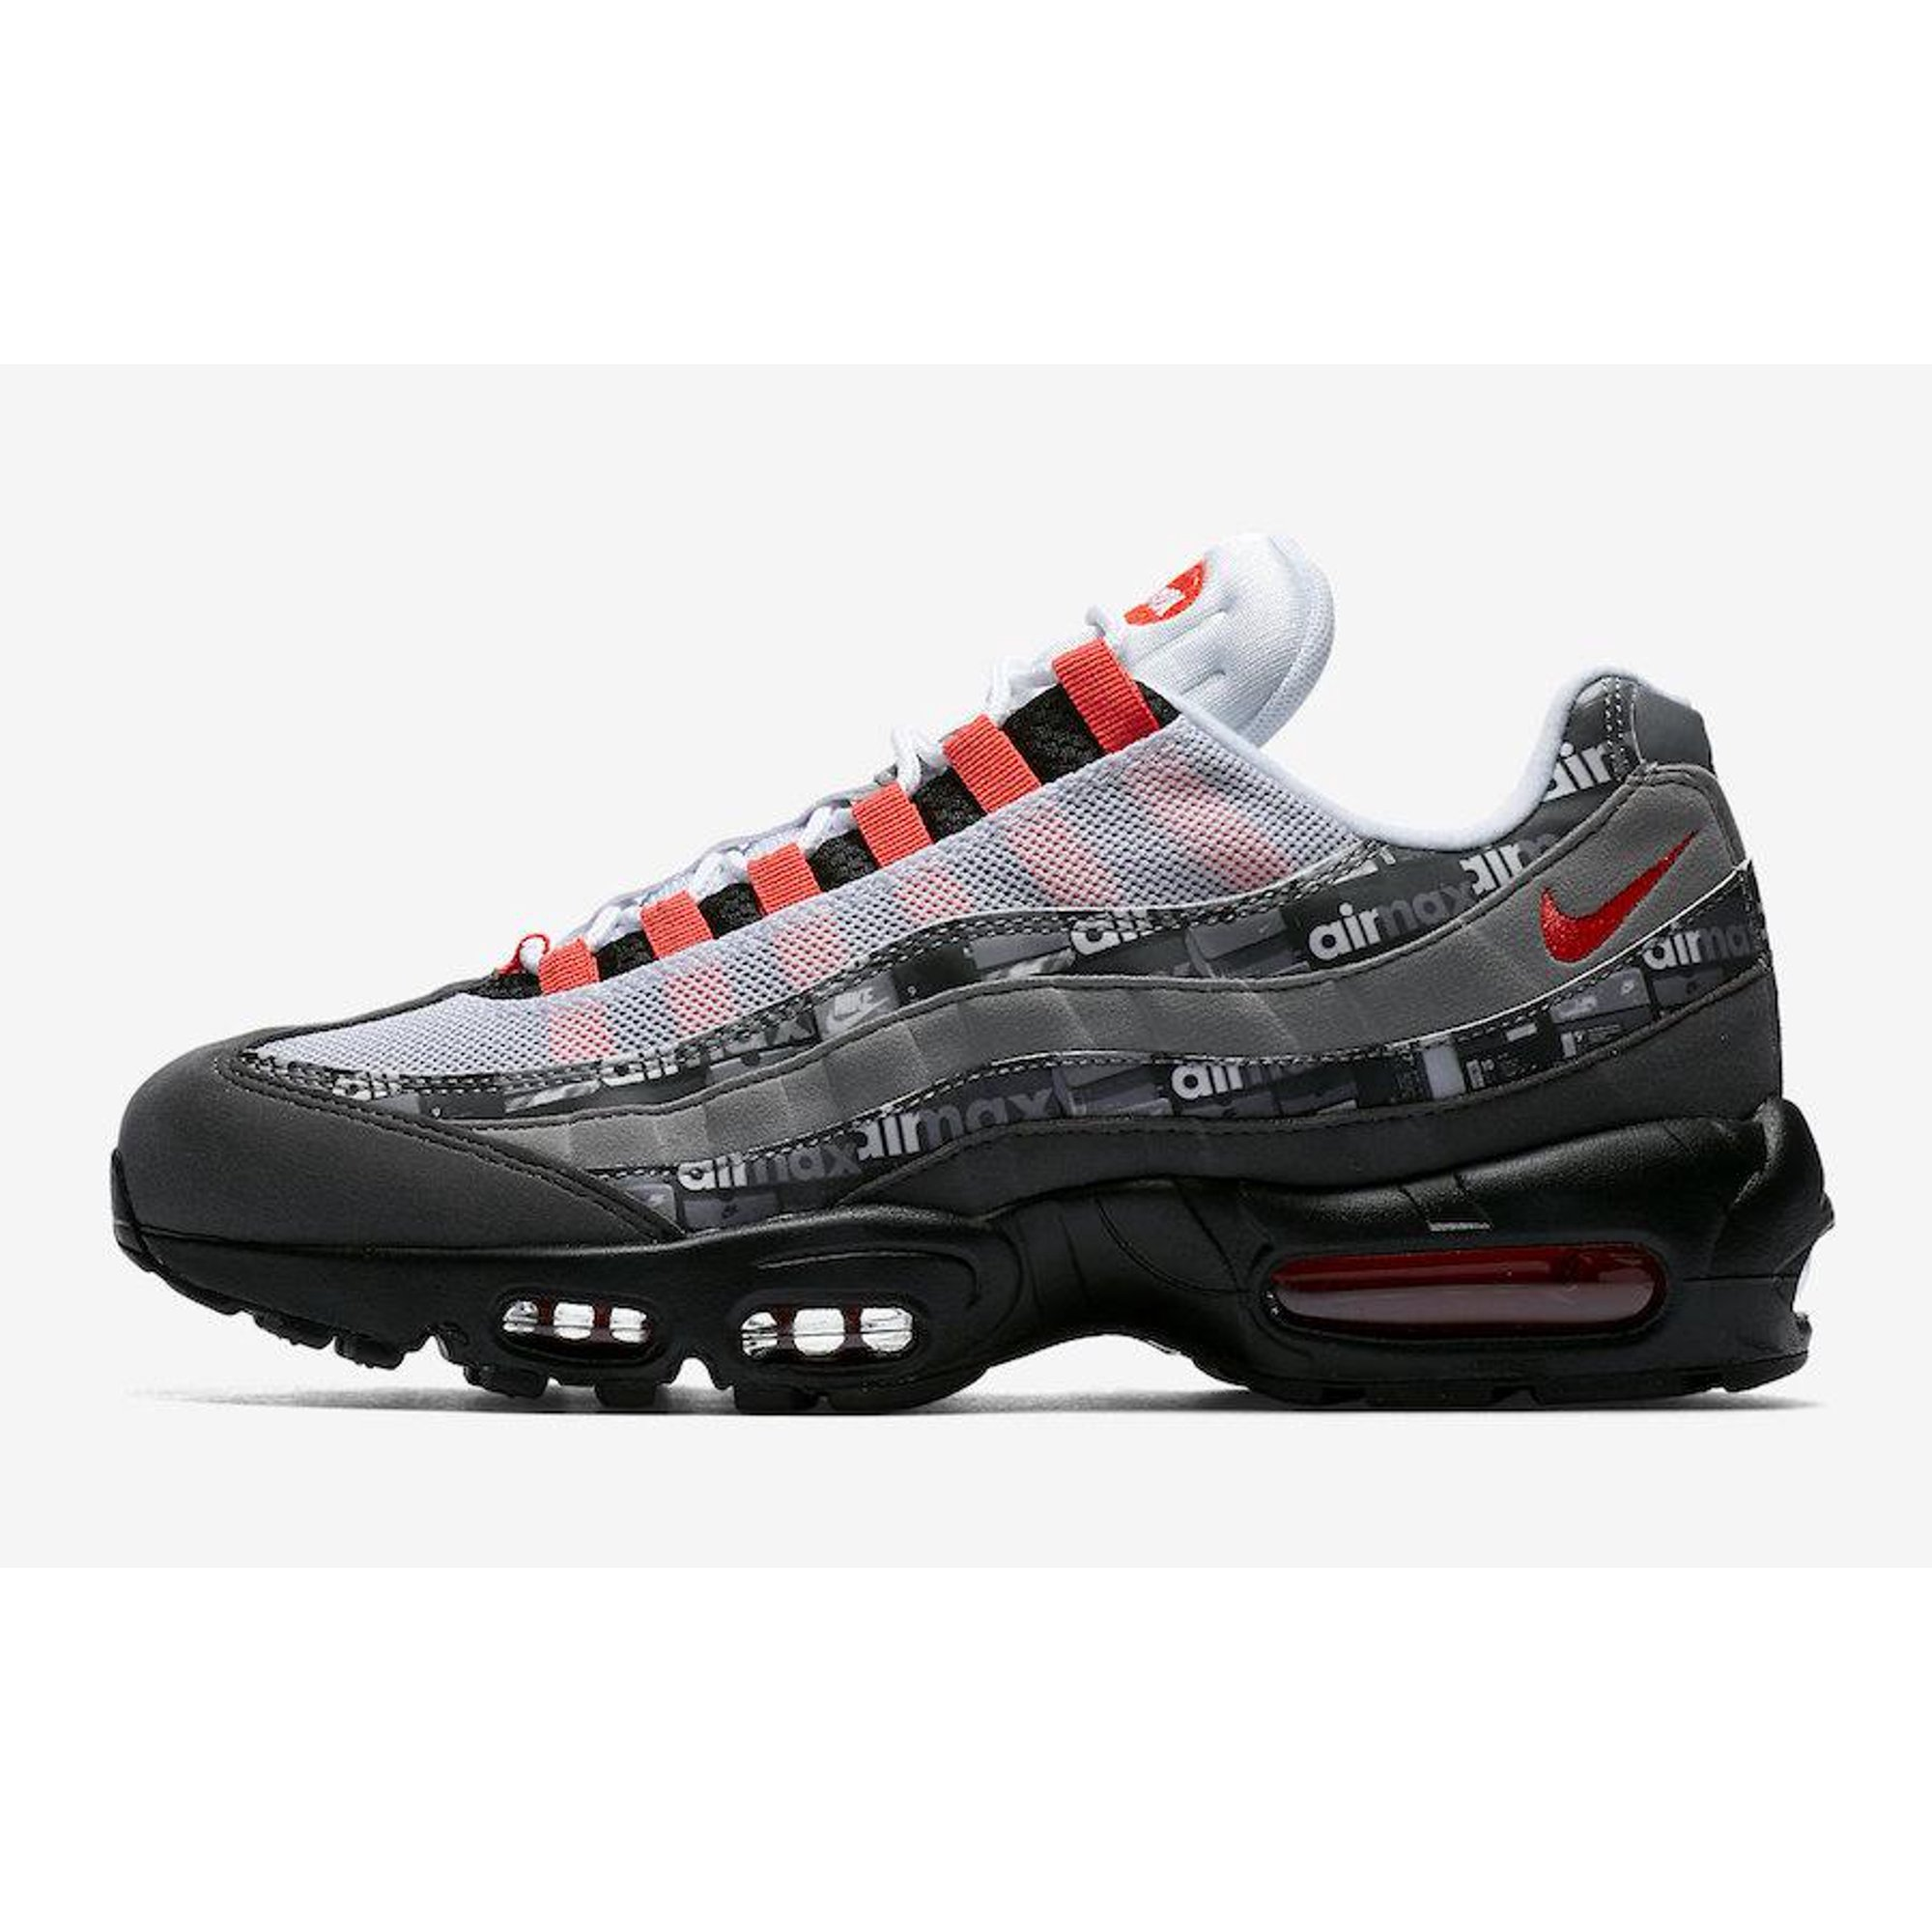 688e4d5f Buy Mens Nike x Atmos Air Max 95 We Love Nike Black Bright Crimson ...